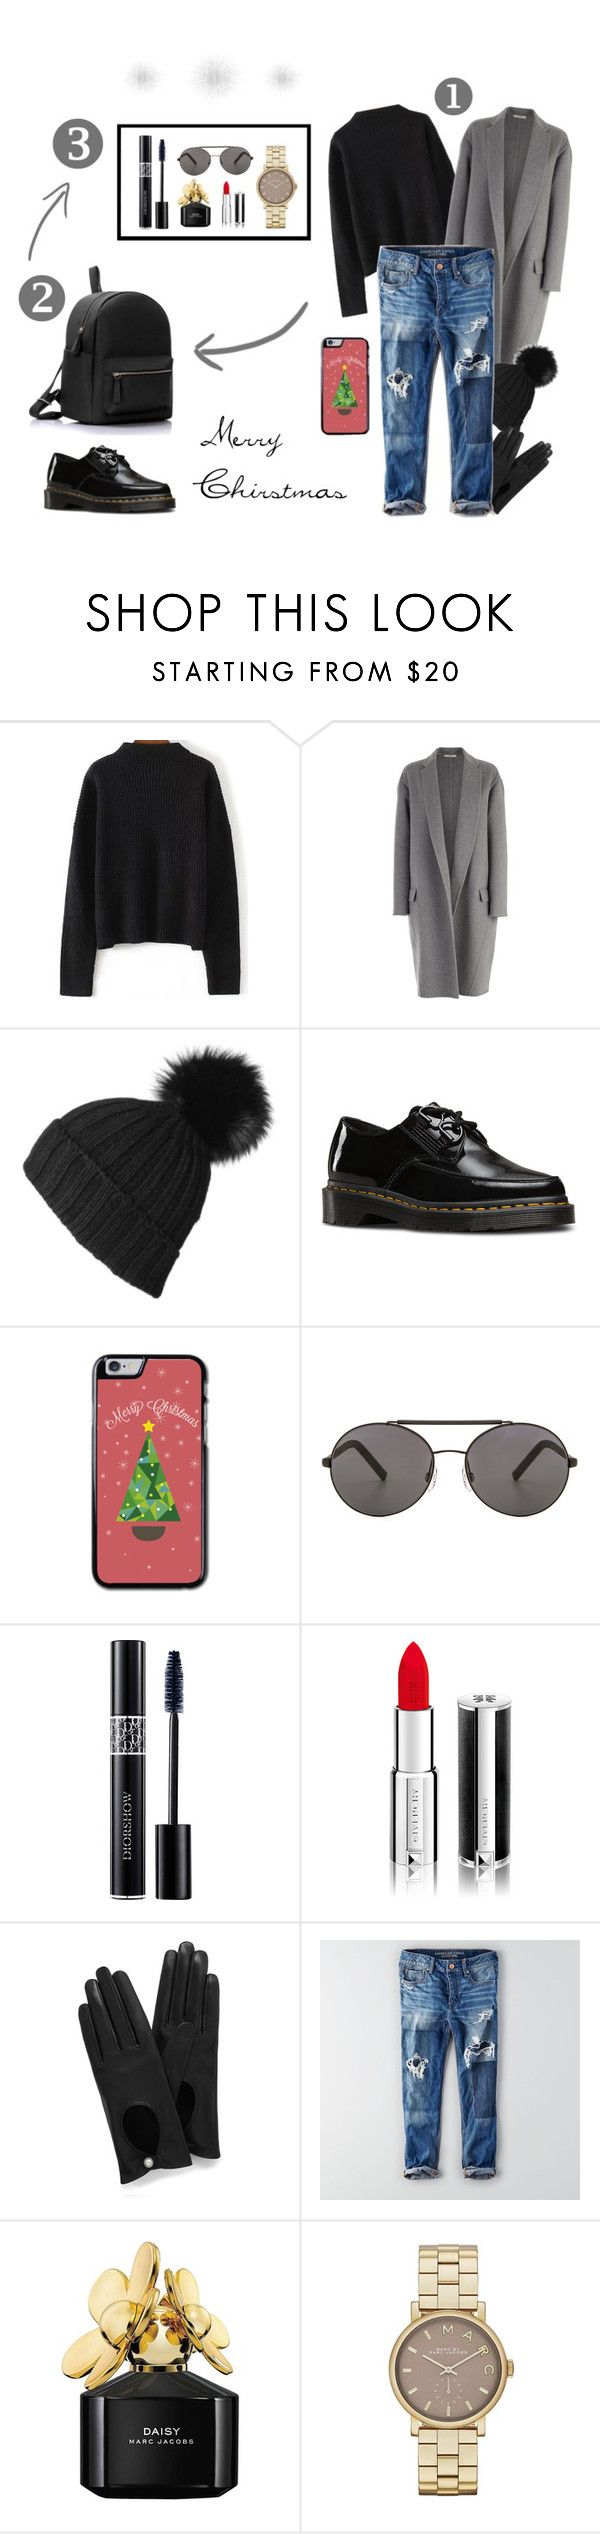 """Merry Christmas"" by smaranda-leorda on Polyvore featuring CÉLINE, Black, Dr. Martens, Seafolly, Christian Dior, Givenchy, Mulberry, American Eagle Outfitters and Marc Jacobs"